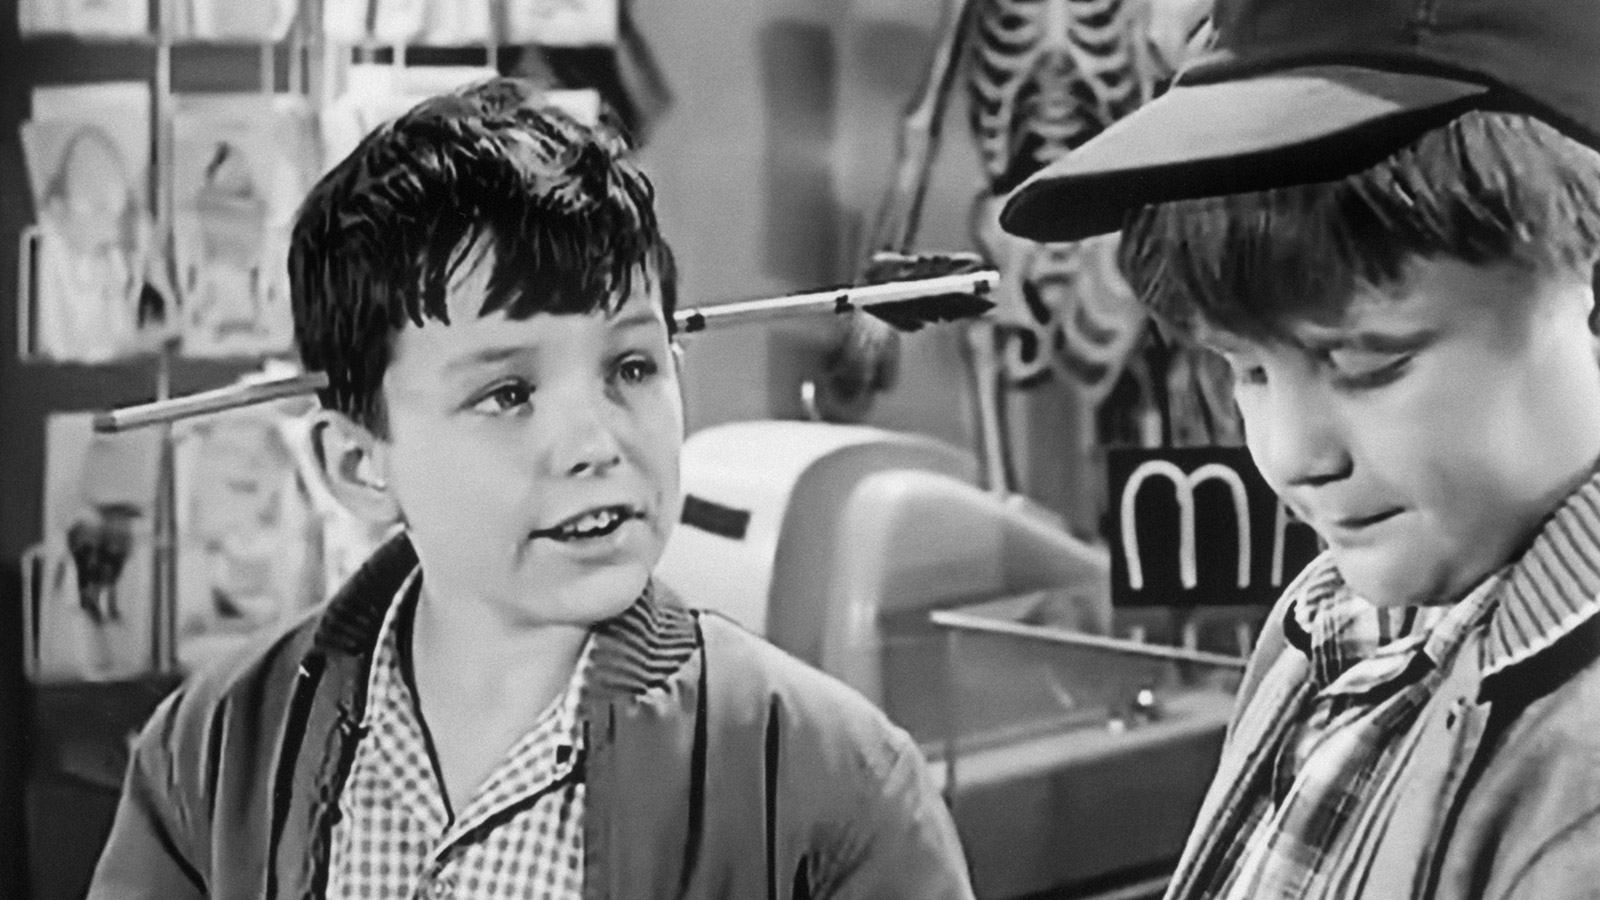 LEAVE IT TO BEAVER, (from left): Jerry Mathers, Robert 'Rusty' Stevens, 'Beaver The Magician', (Seas